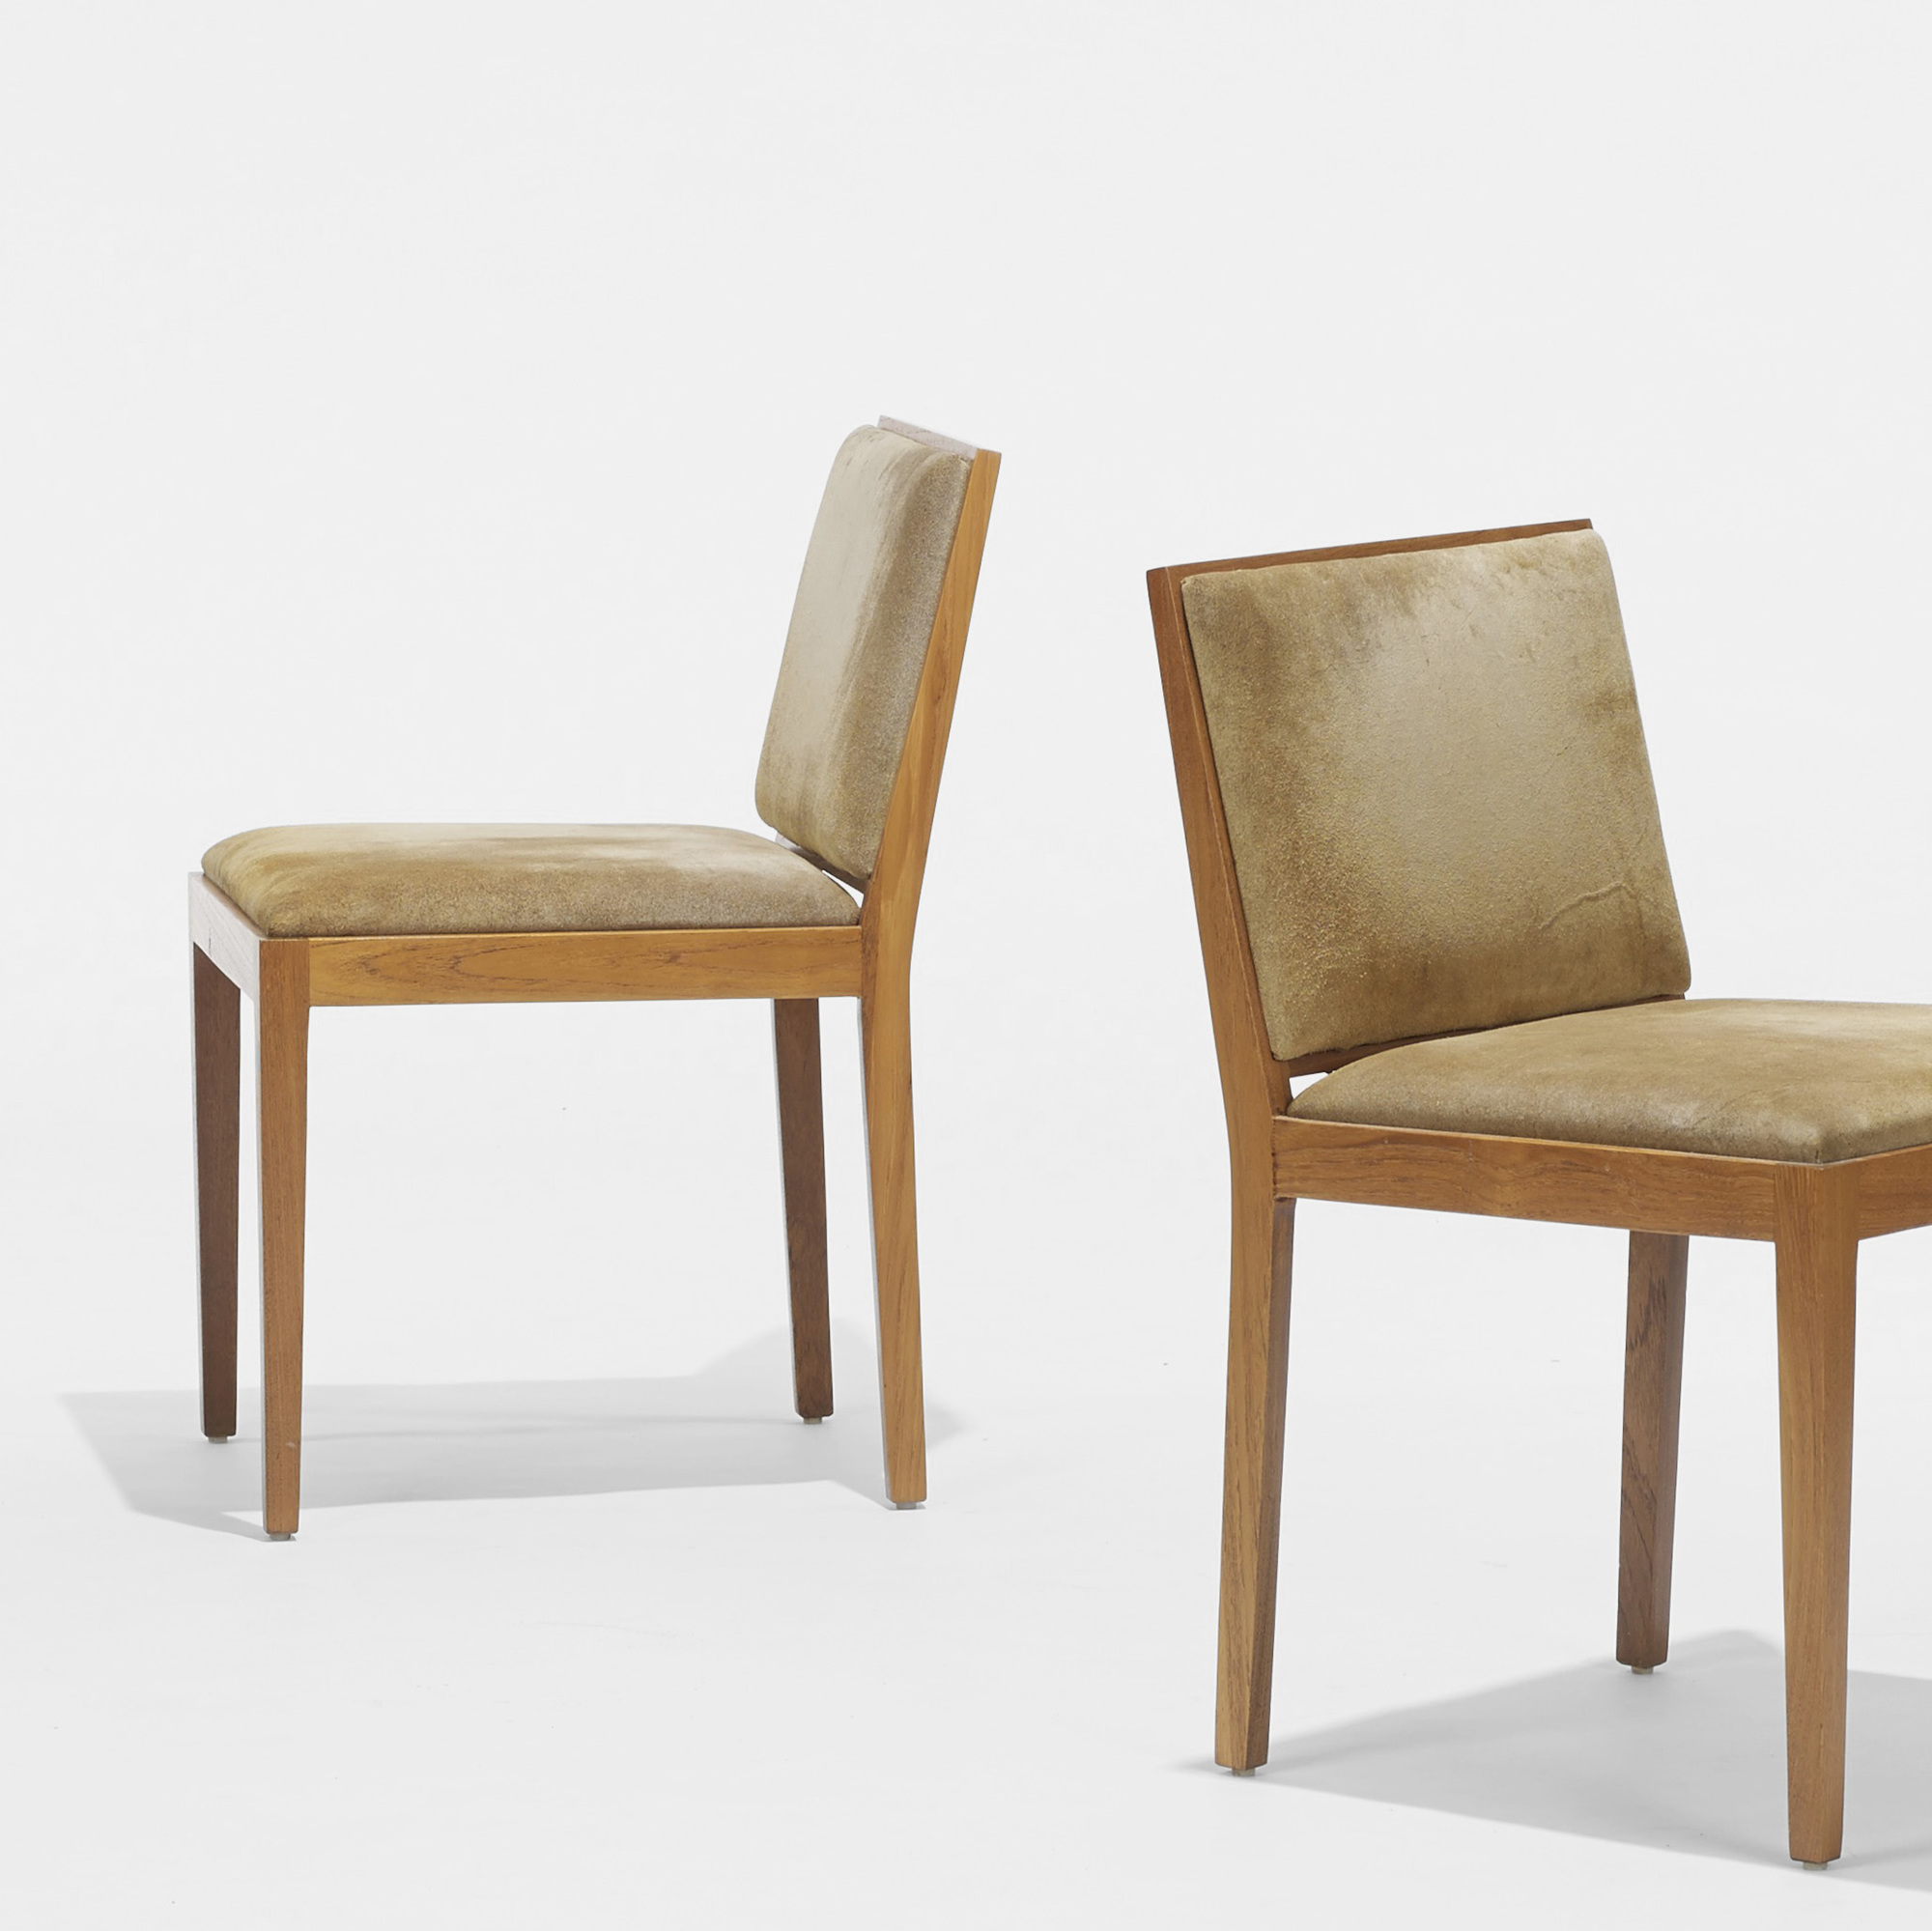 154: Ludwig Mies van der Rohe / set of eight dining chairs from 860 Lake Shore Drive, Chicago (5 of 6)